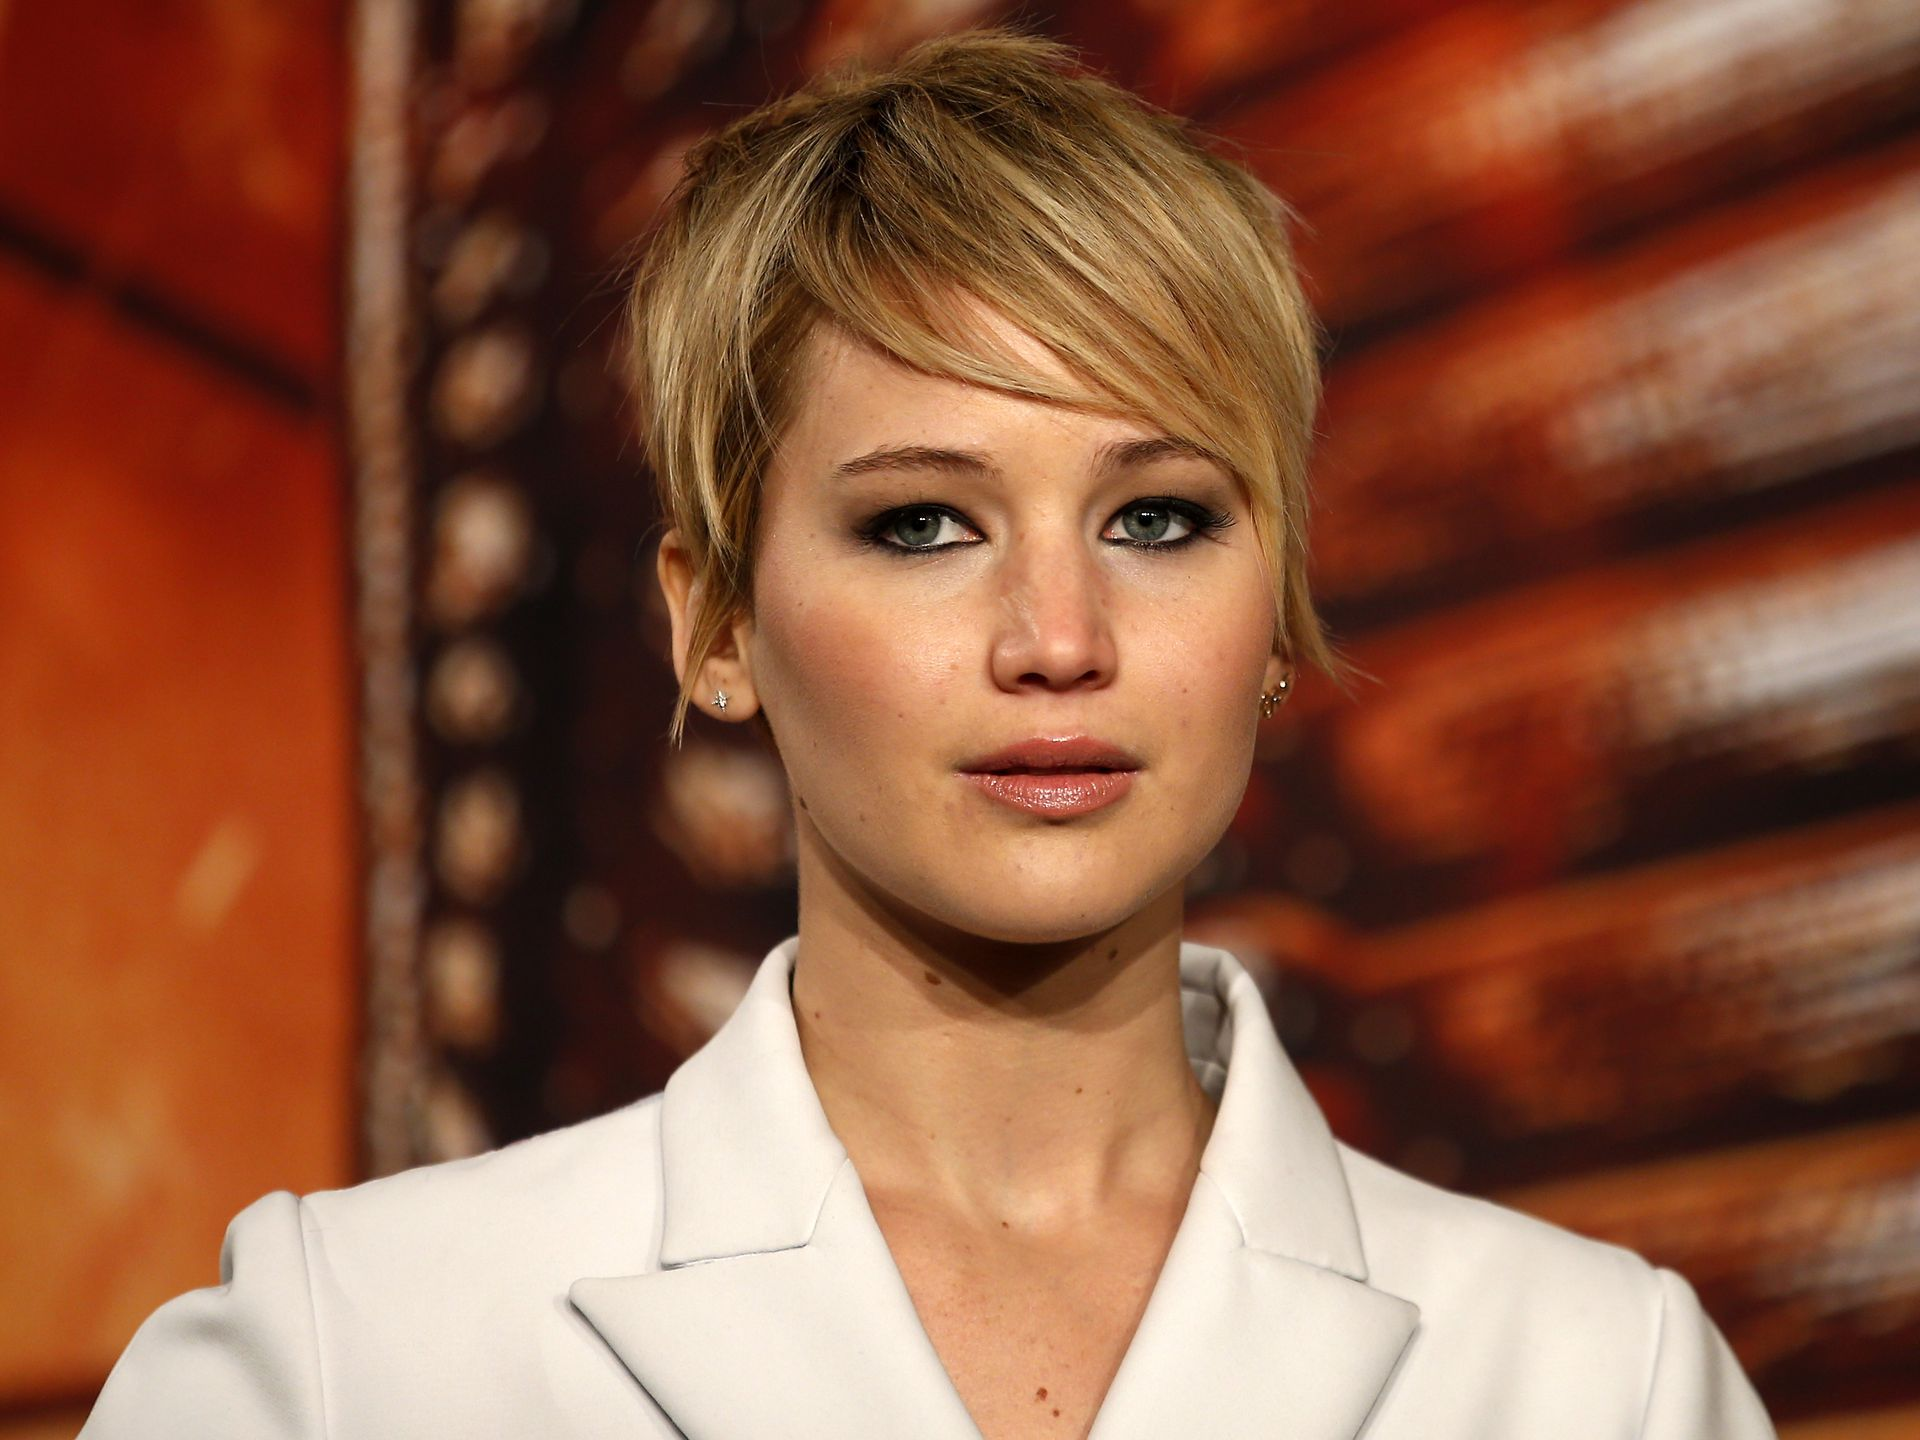 The 23 Year Old Actress Jennifer Lawrence Showed How To Add Some